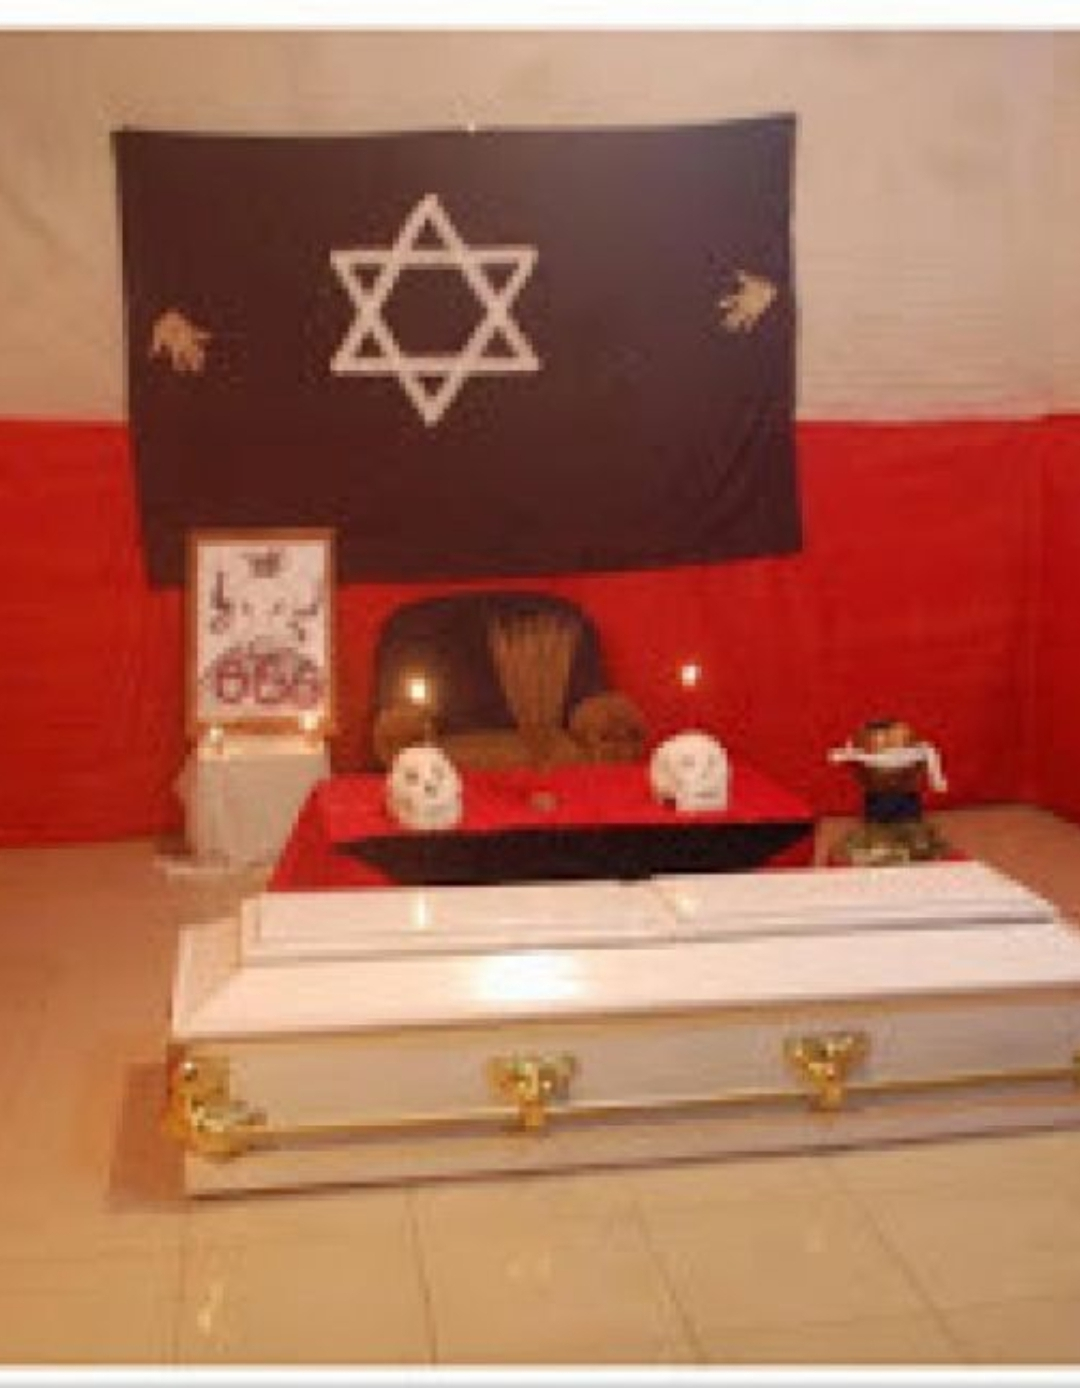 I want to join occult for money ritual +2349025235625